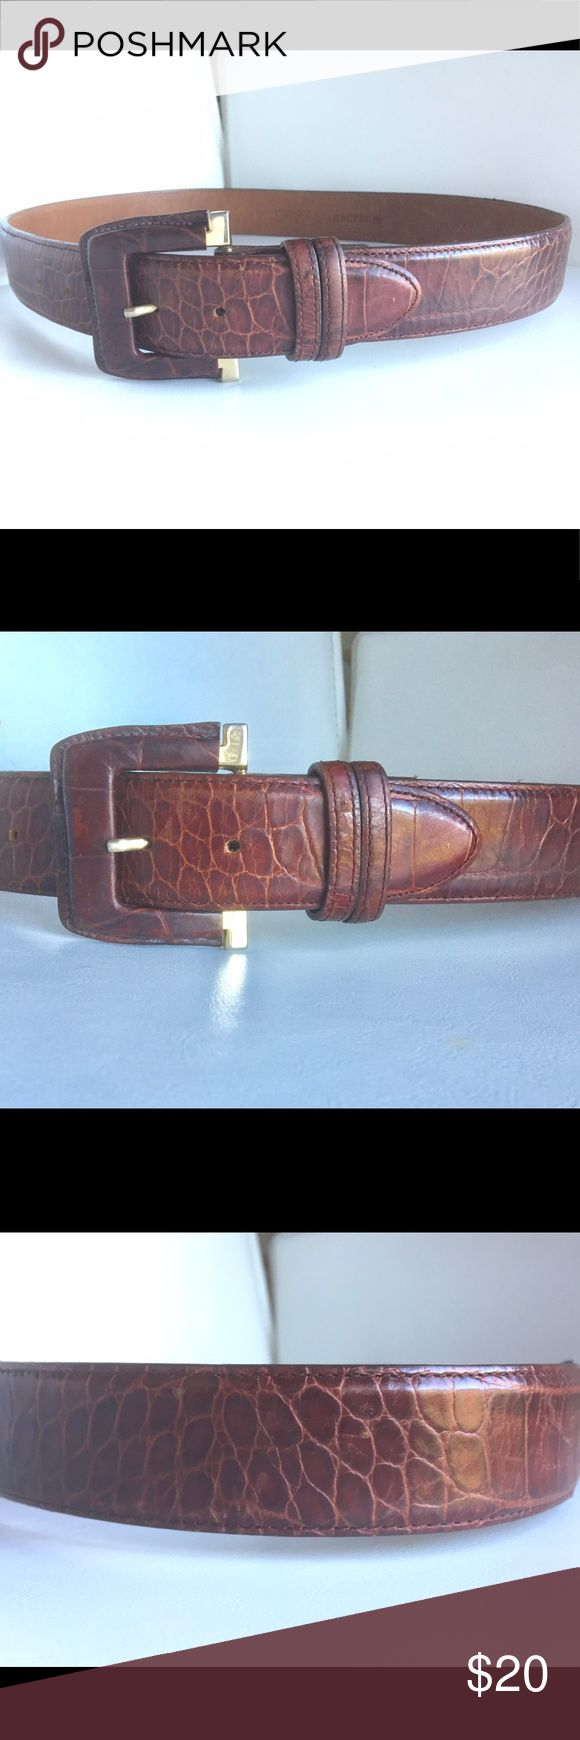 """JOAN & DAVID BROWN CALFSKIN L BELT MOC CROC 1.5""""W This good condition Joan & David size L belt measures 32.5"""" in the smallest position, 34.5"""" in the center position and 36.5"""" in the largest.  It's 1.5"""" wide and the buckle is 2.5"""" wide. Joan & David Accessories Belts"""